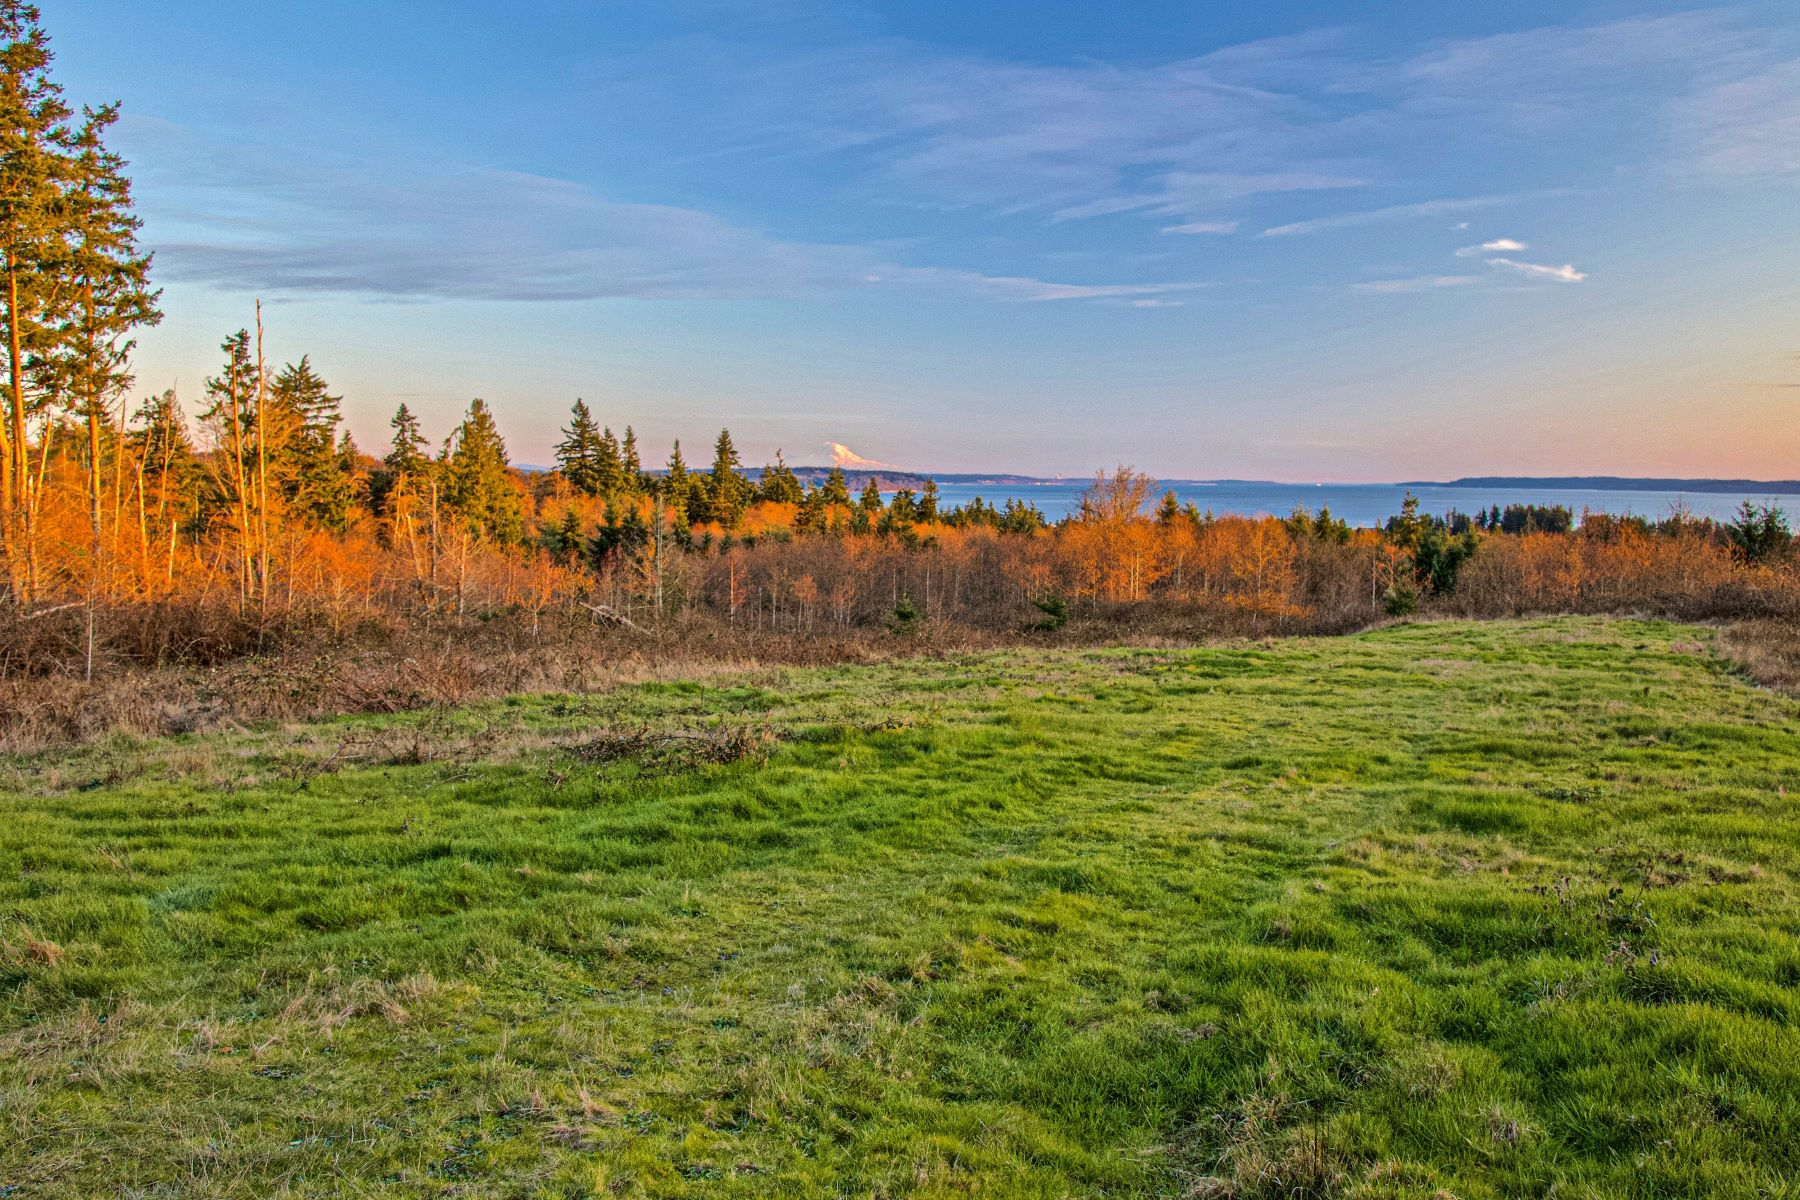 Land for Sale at 23XX Thompson Rd, Langley, WA 98260 23XX Thompson Rd Langley, Washington 98260 United States